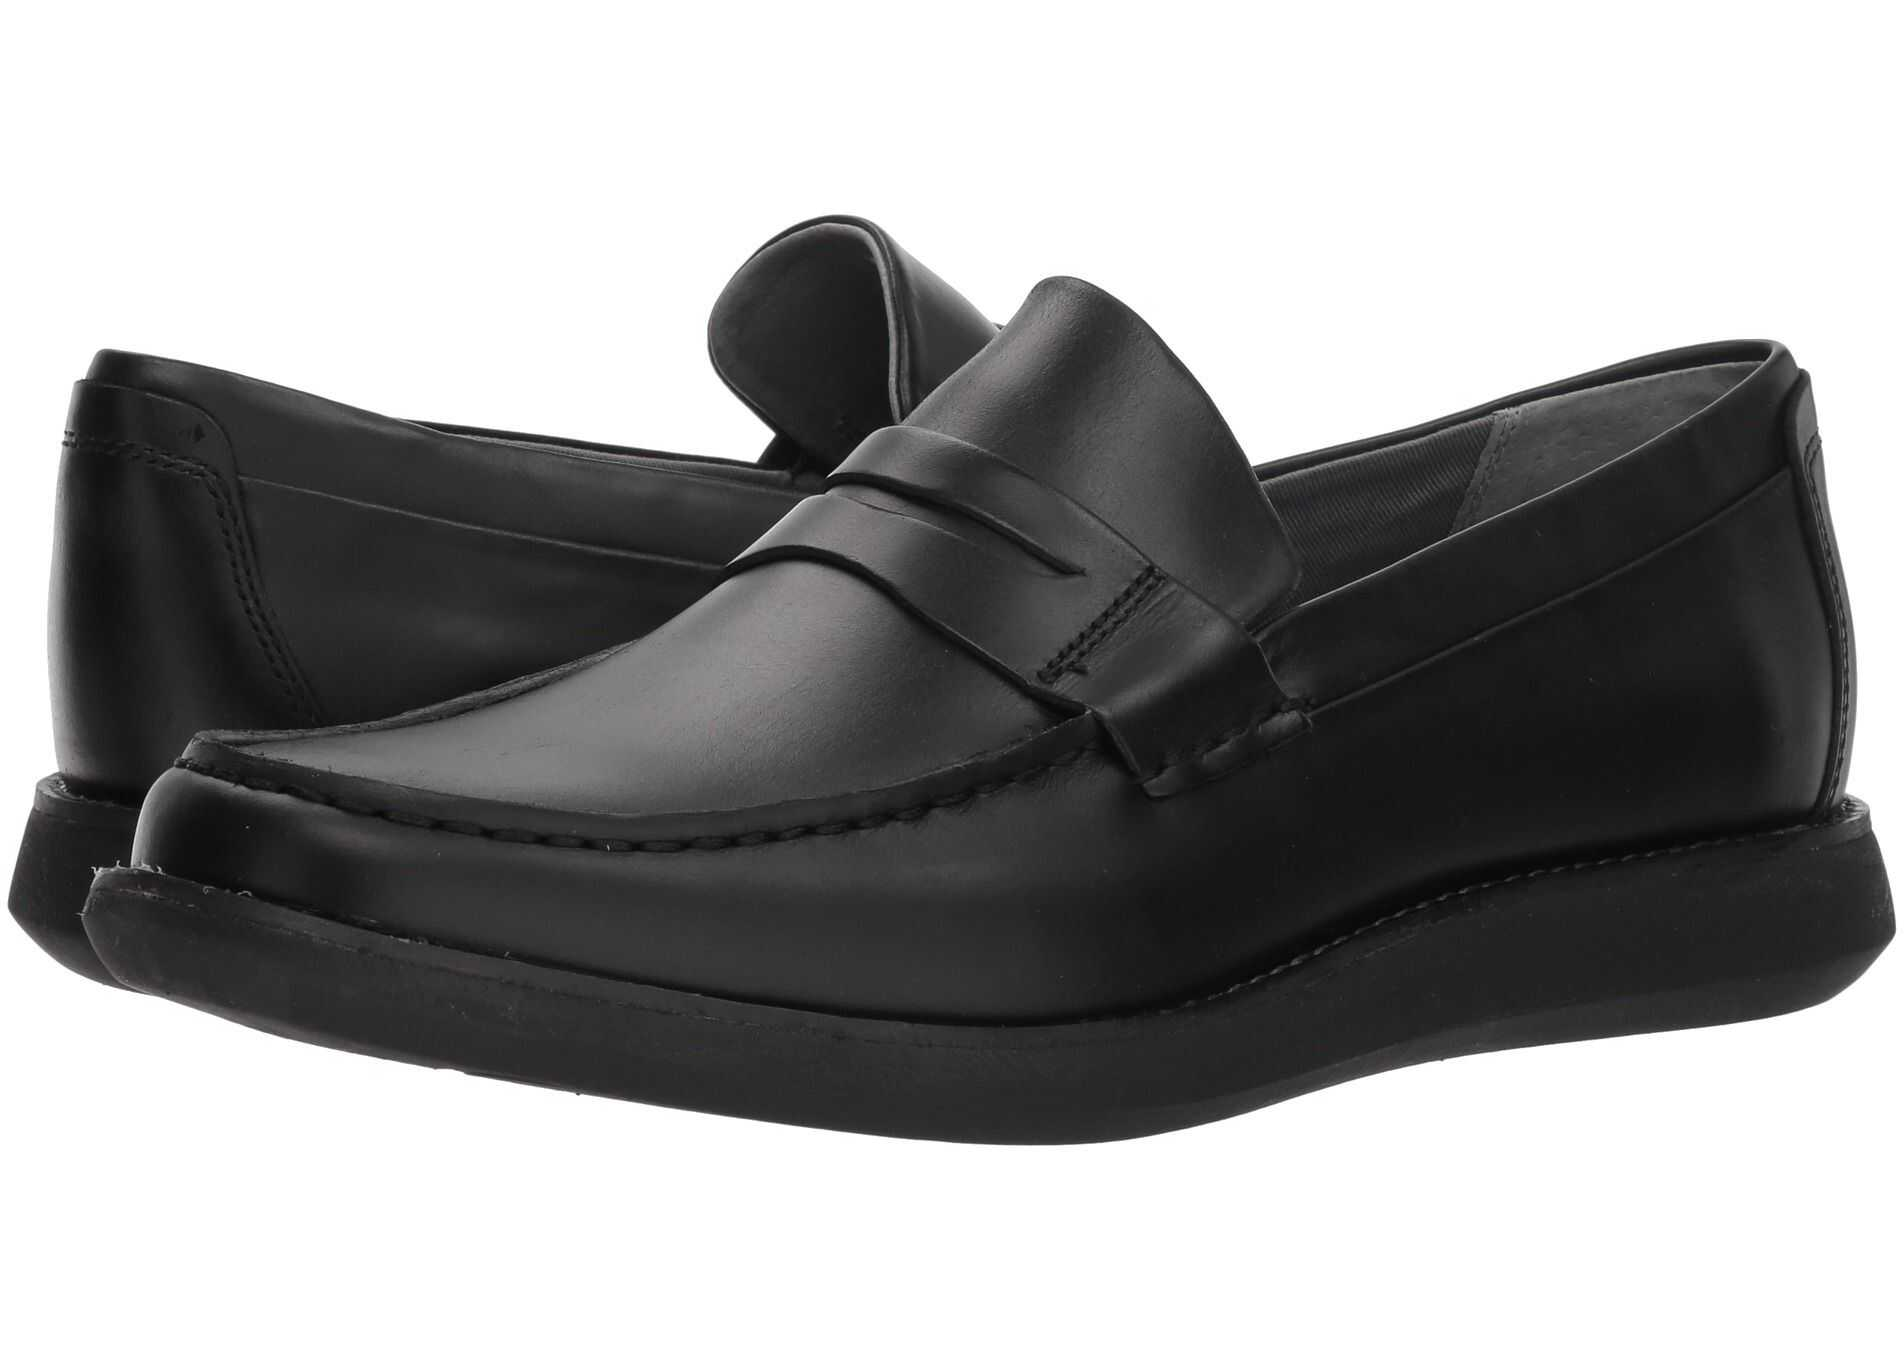 Sperry Top-Sider Kennedy Penny Black